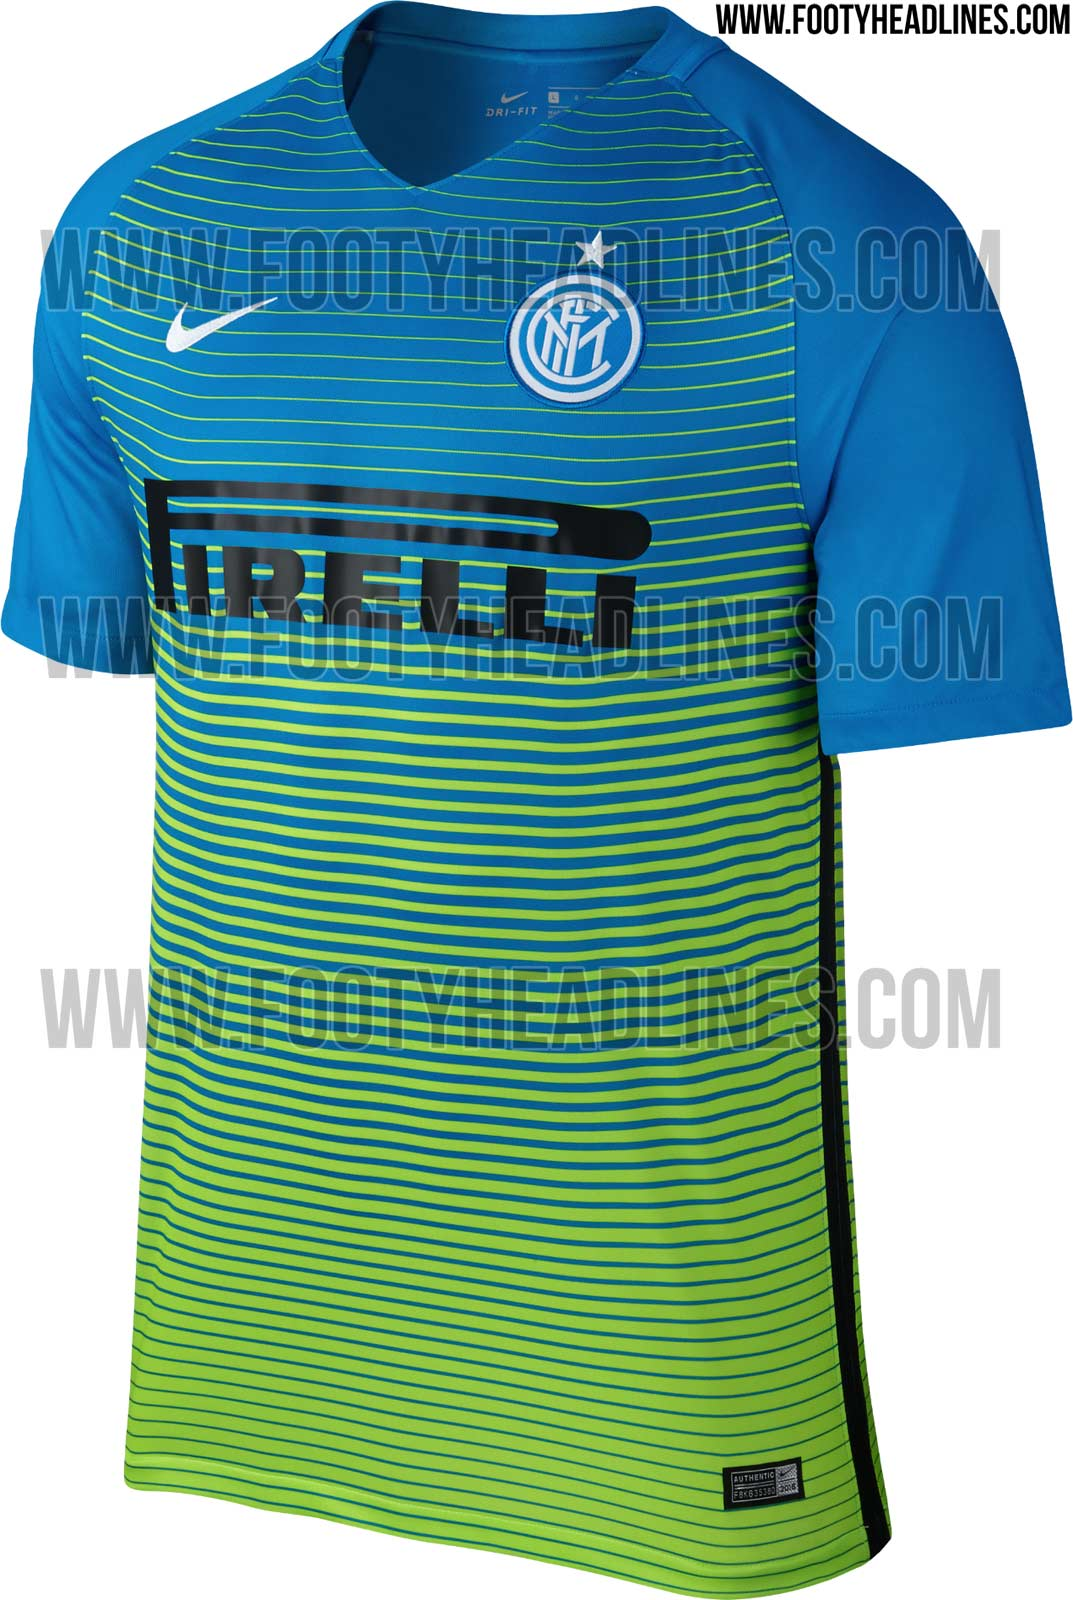 PSG s new third kit has been leaked 25b7932d3